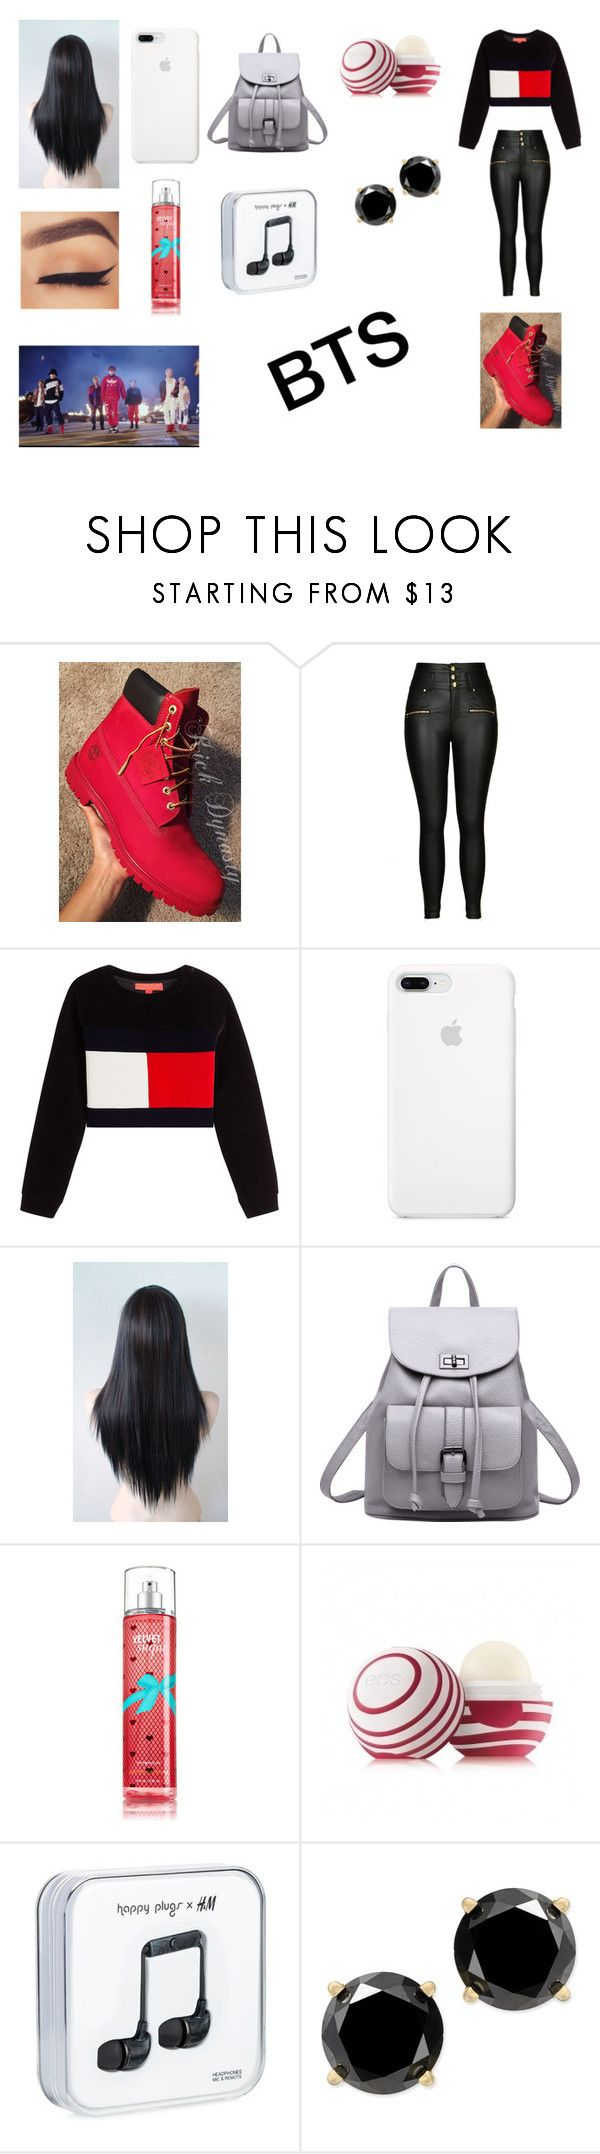 152 best My Polyvore images on Pinterest